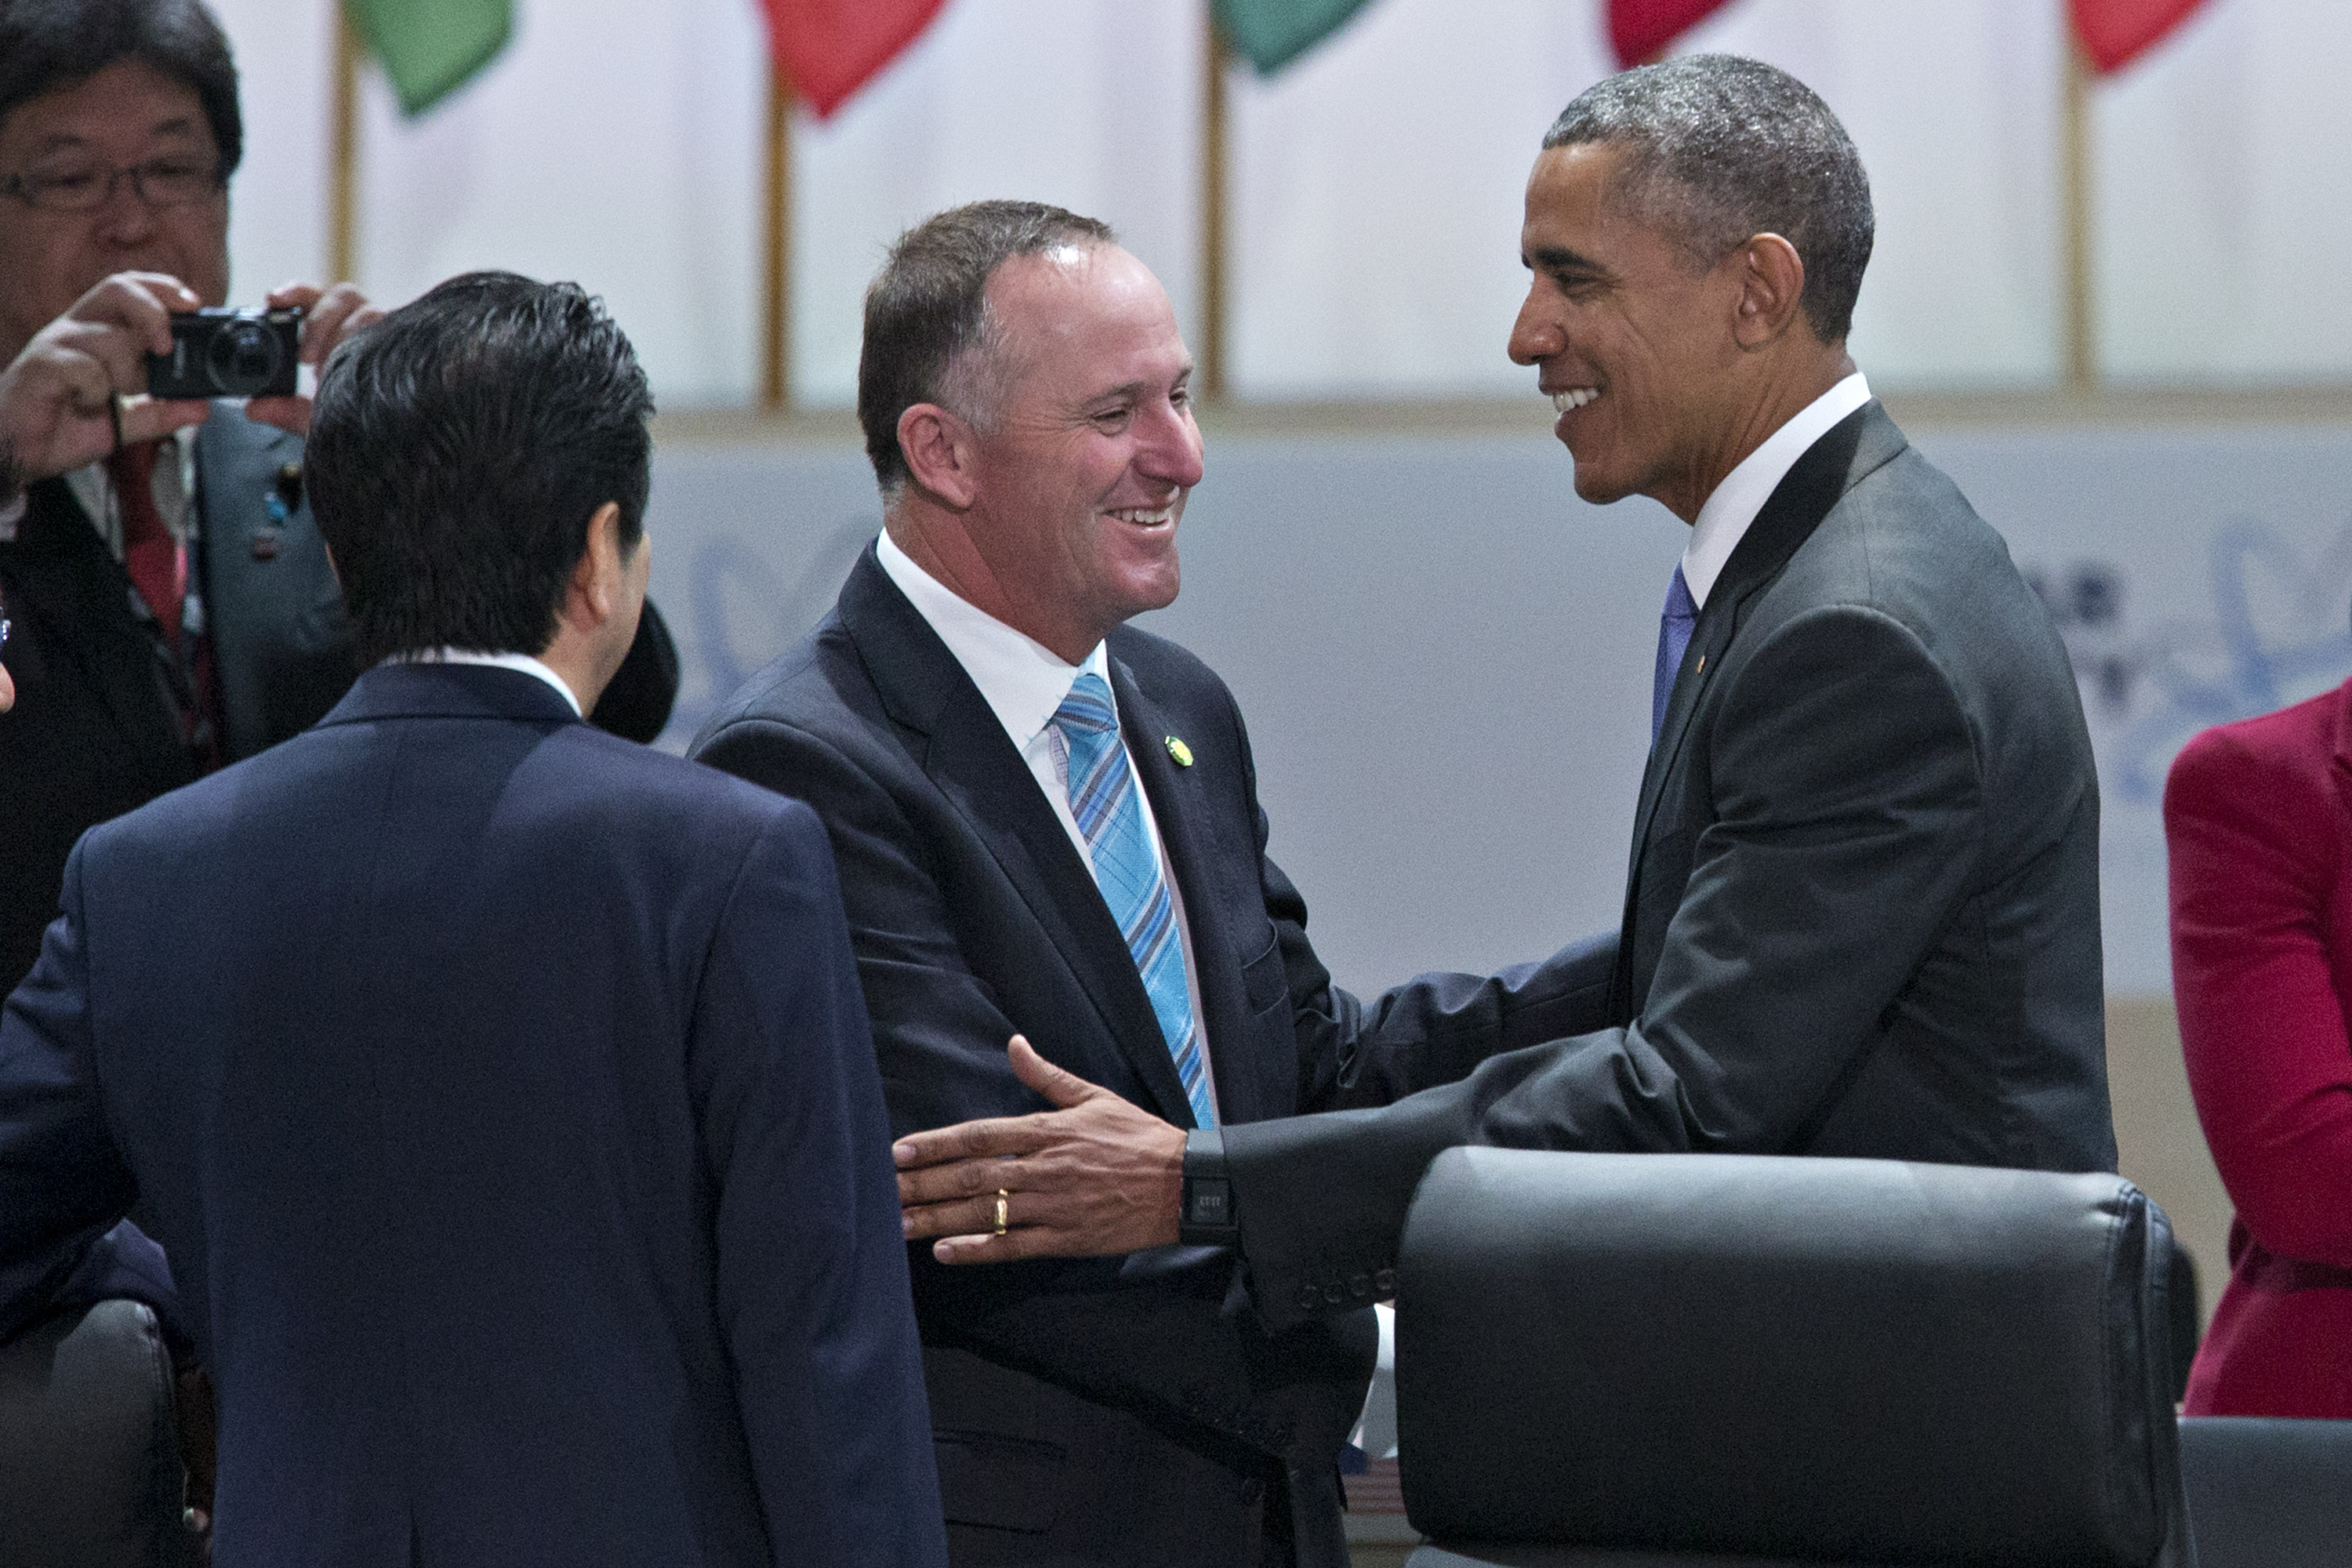 President Barack Obama shakes hands with New Zealand Prime Minister John Key April 1 during the nuclear security summit in Washington. New Zealand assumes the presidency of the UN Security Council in September, when a U.S.-backed resolution reinforcing the global norm against nuclear testing may be adopted. [Photo credit: Andrew Harrer-Pool/Getty Images]